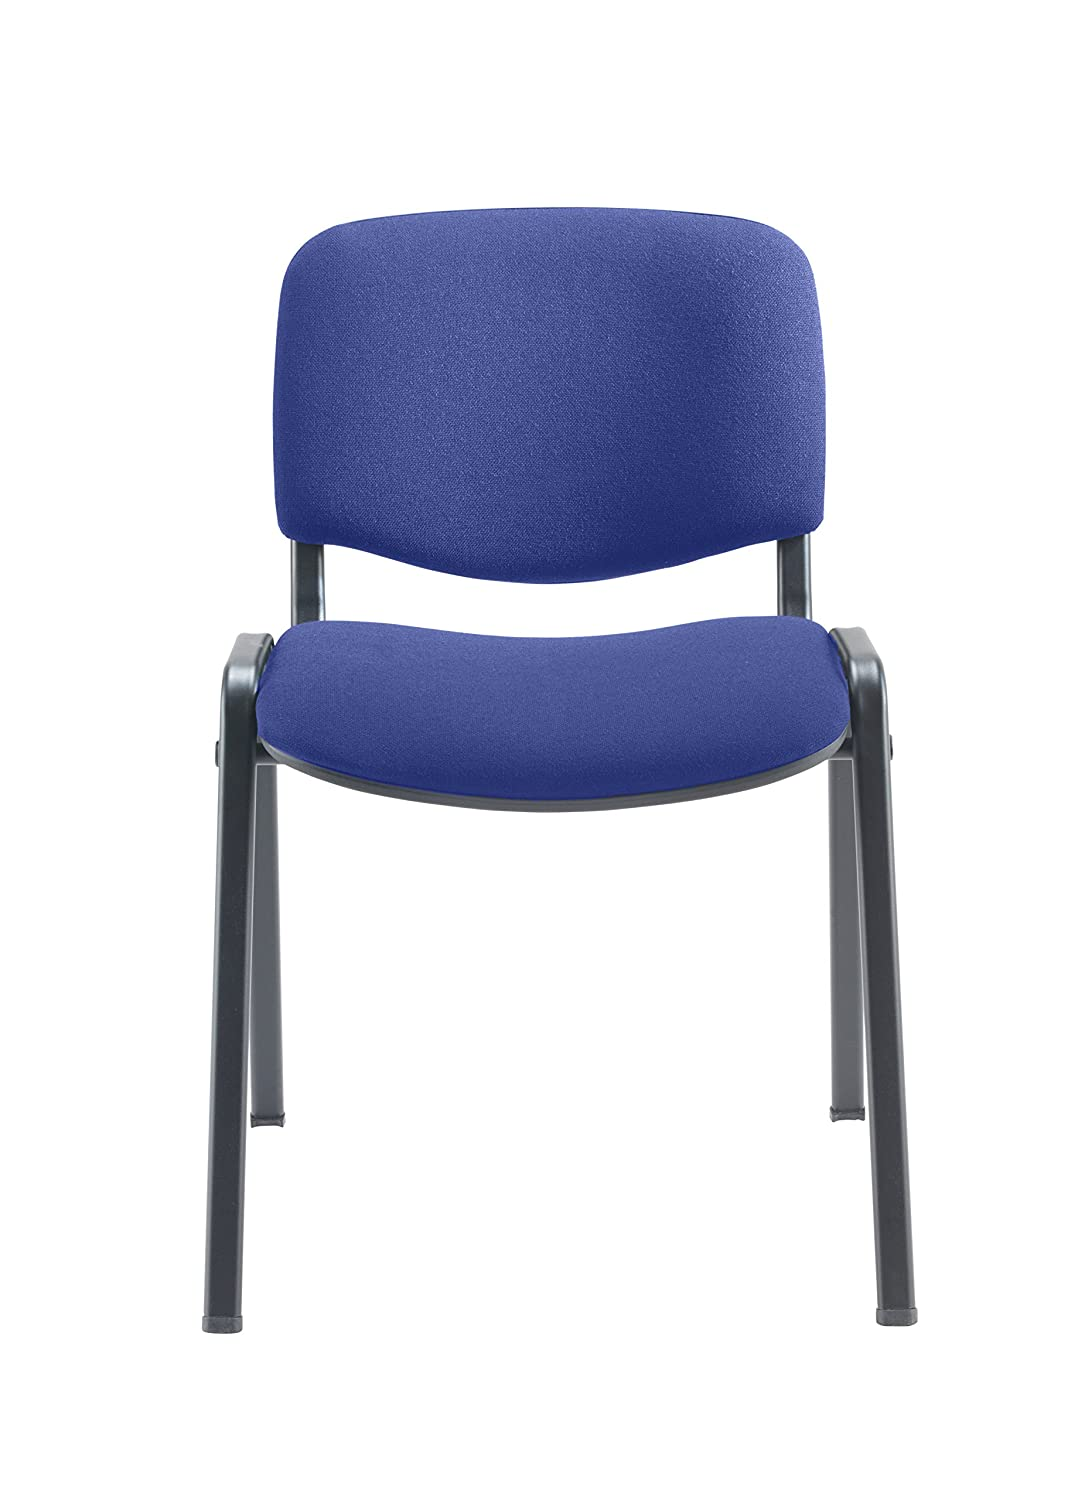 Office Hippo Heavy Duty Stackable Reception Chair Royal Blue Pack of 4 Fabric Black Frame